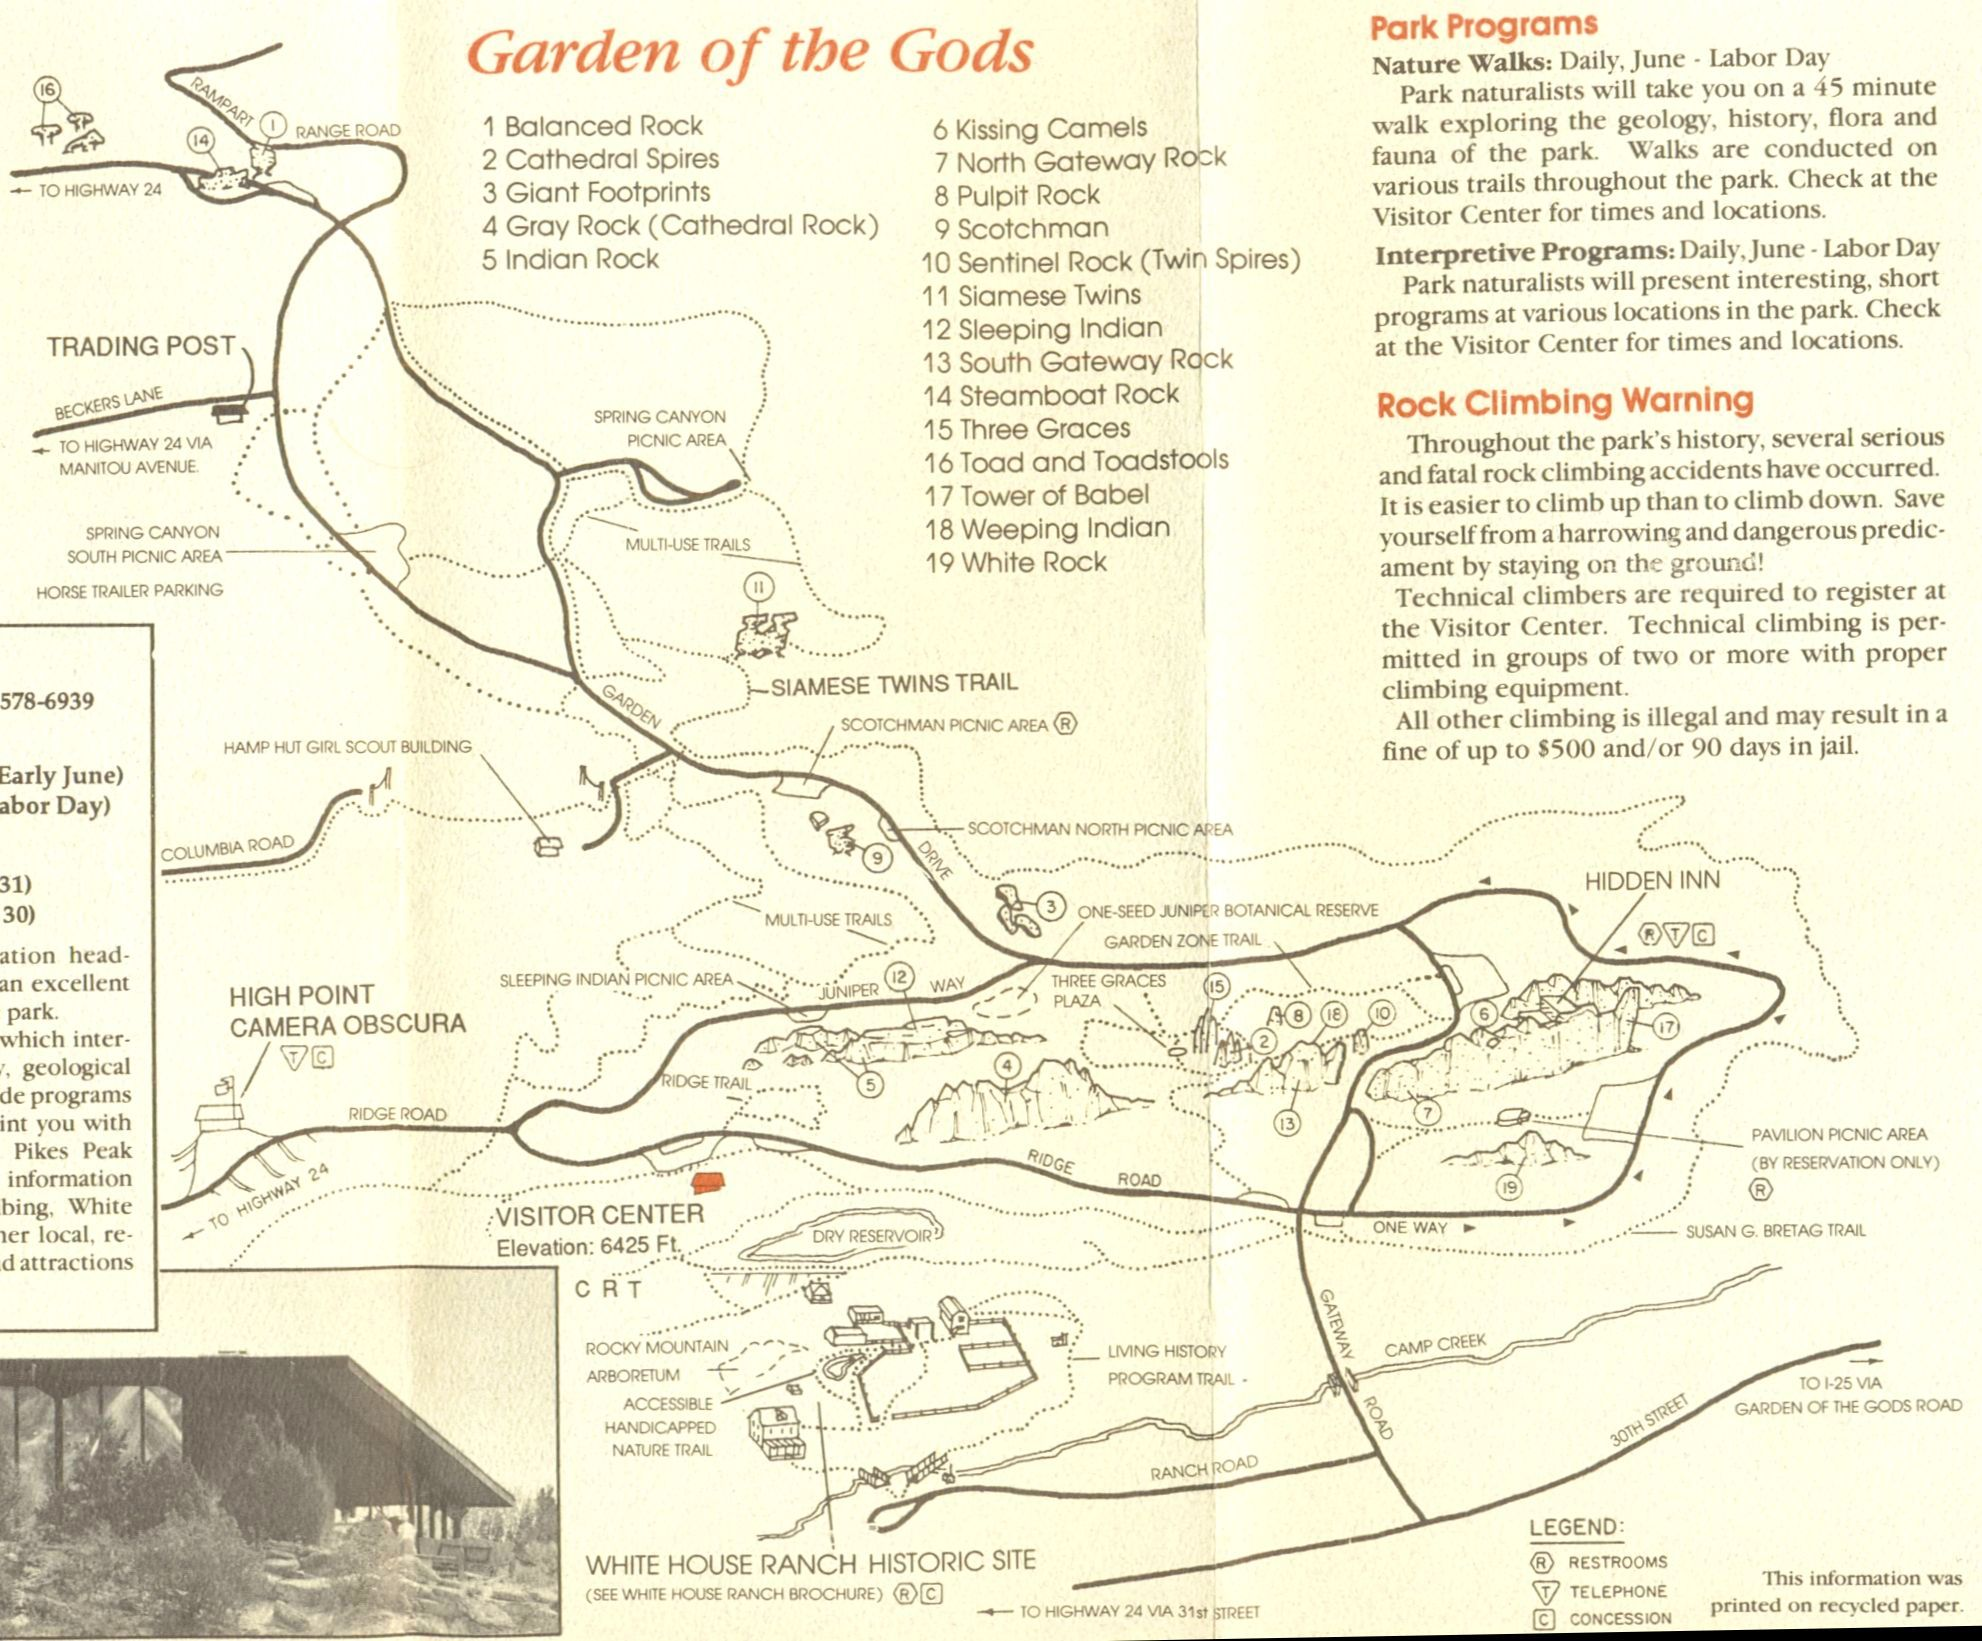 Garden Of The Gods Colorado Map.Photographs And Map Of The Sandstone Fins And Pinnacles In The